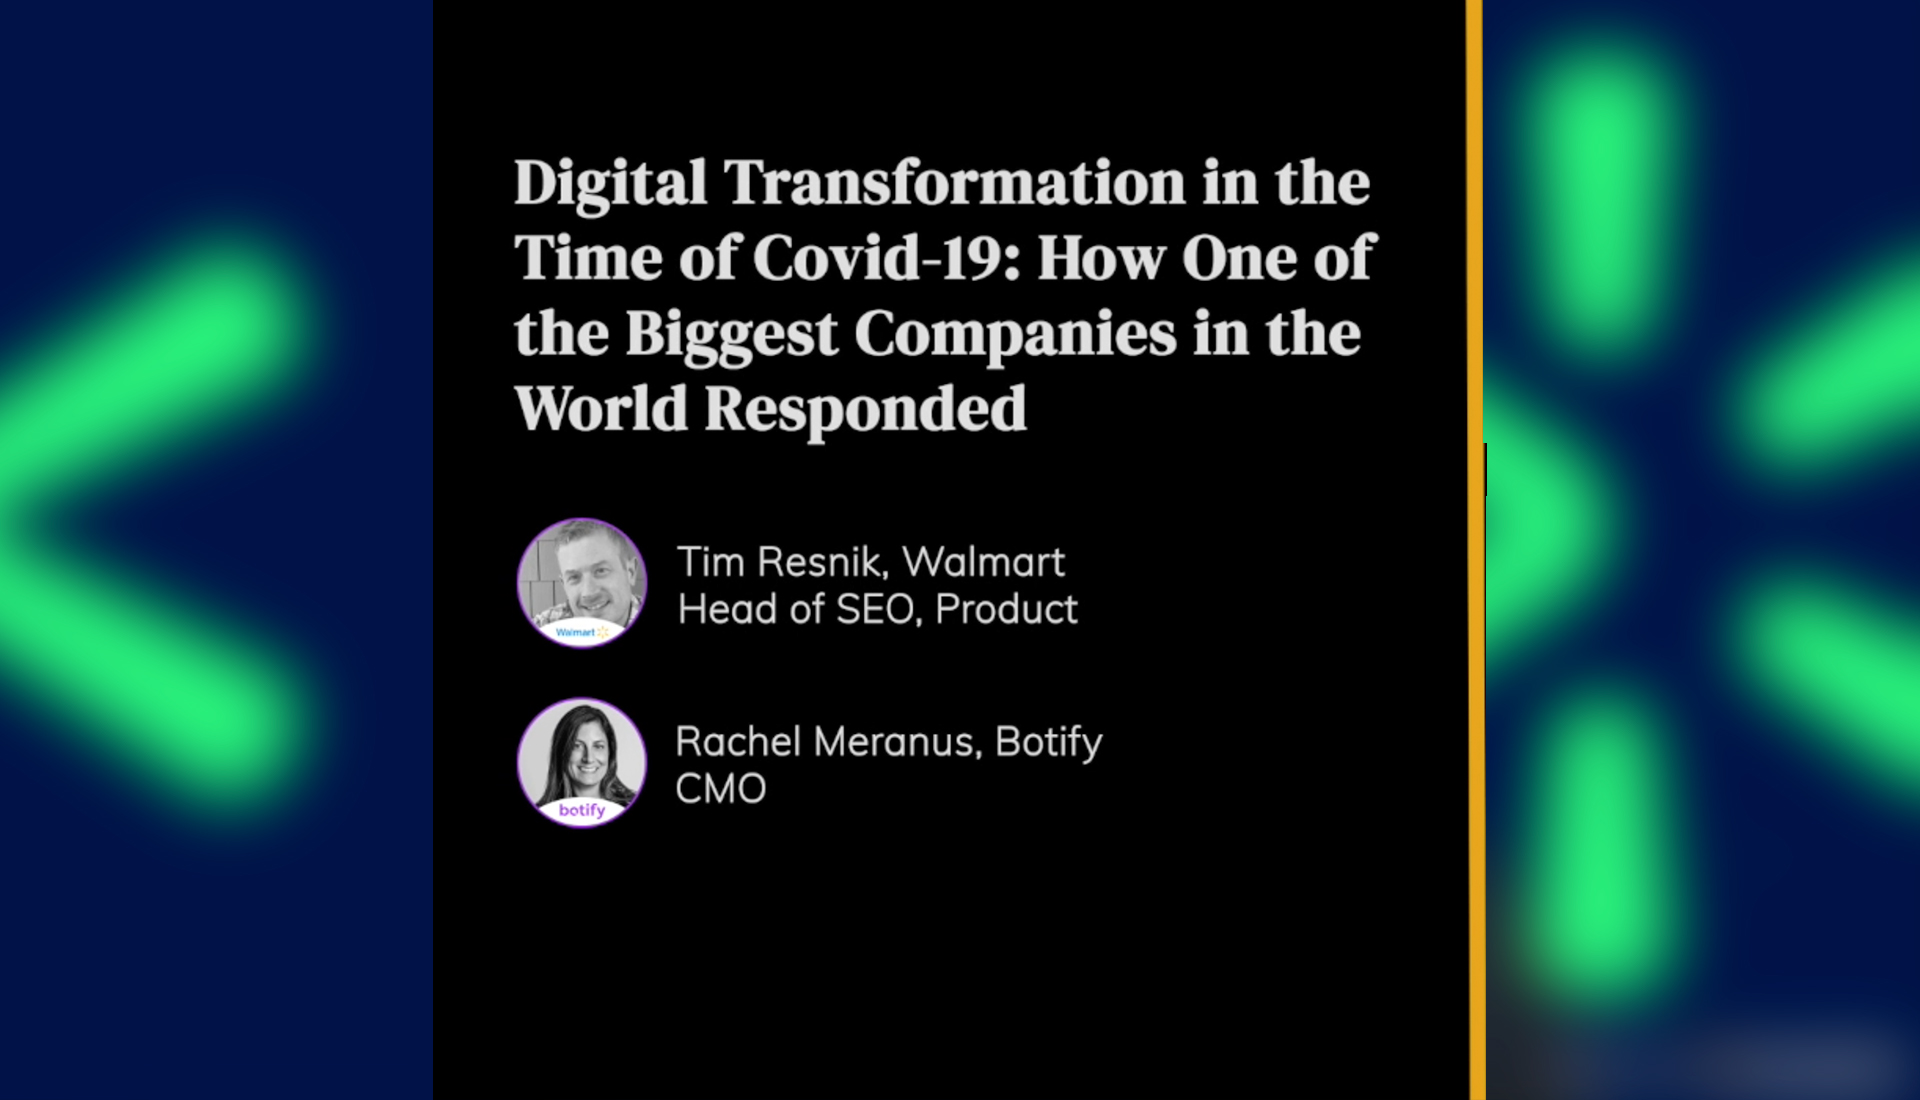 Digital Transformation in the Time of Covid-19: How One of the Biggest Companies in the World Responded